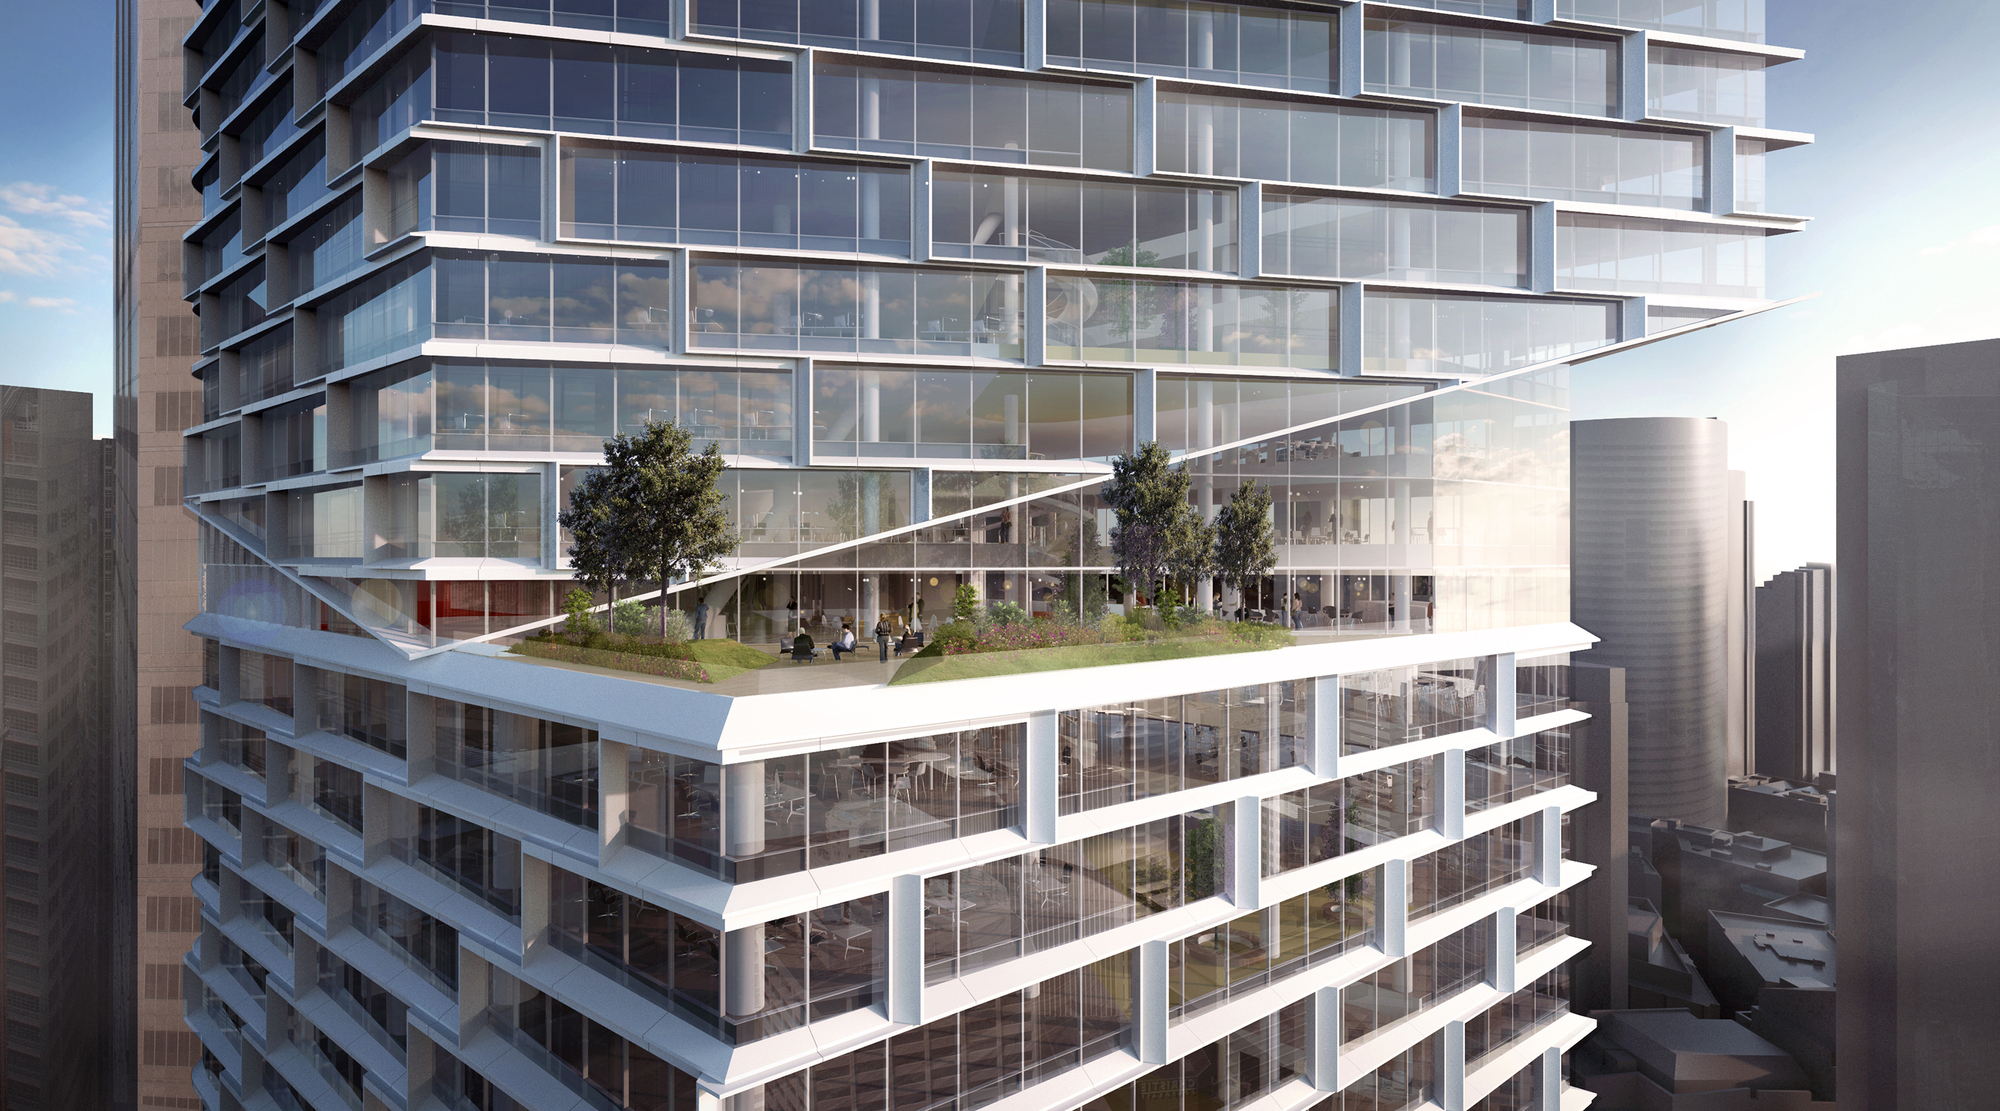 Gallery Of 3xn Wins Approval For 200 Meter Tower In Sydney